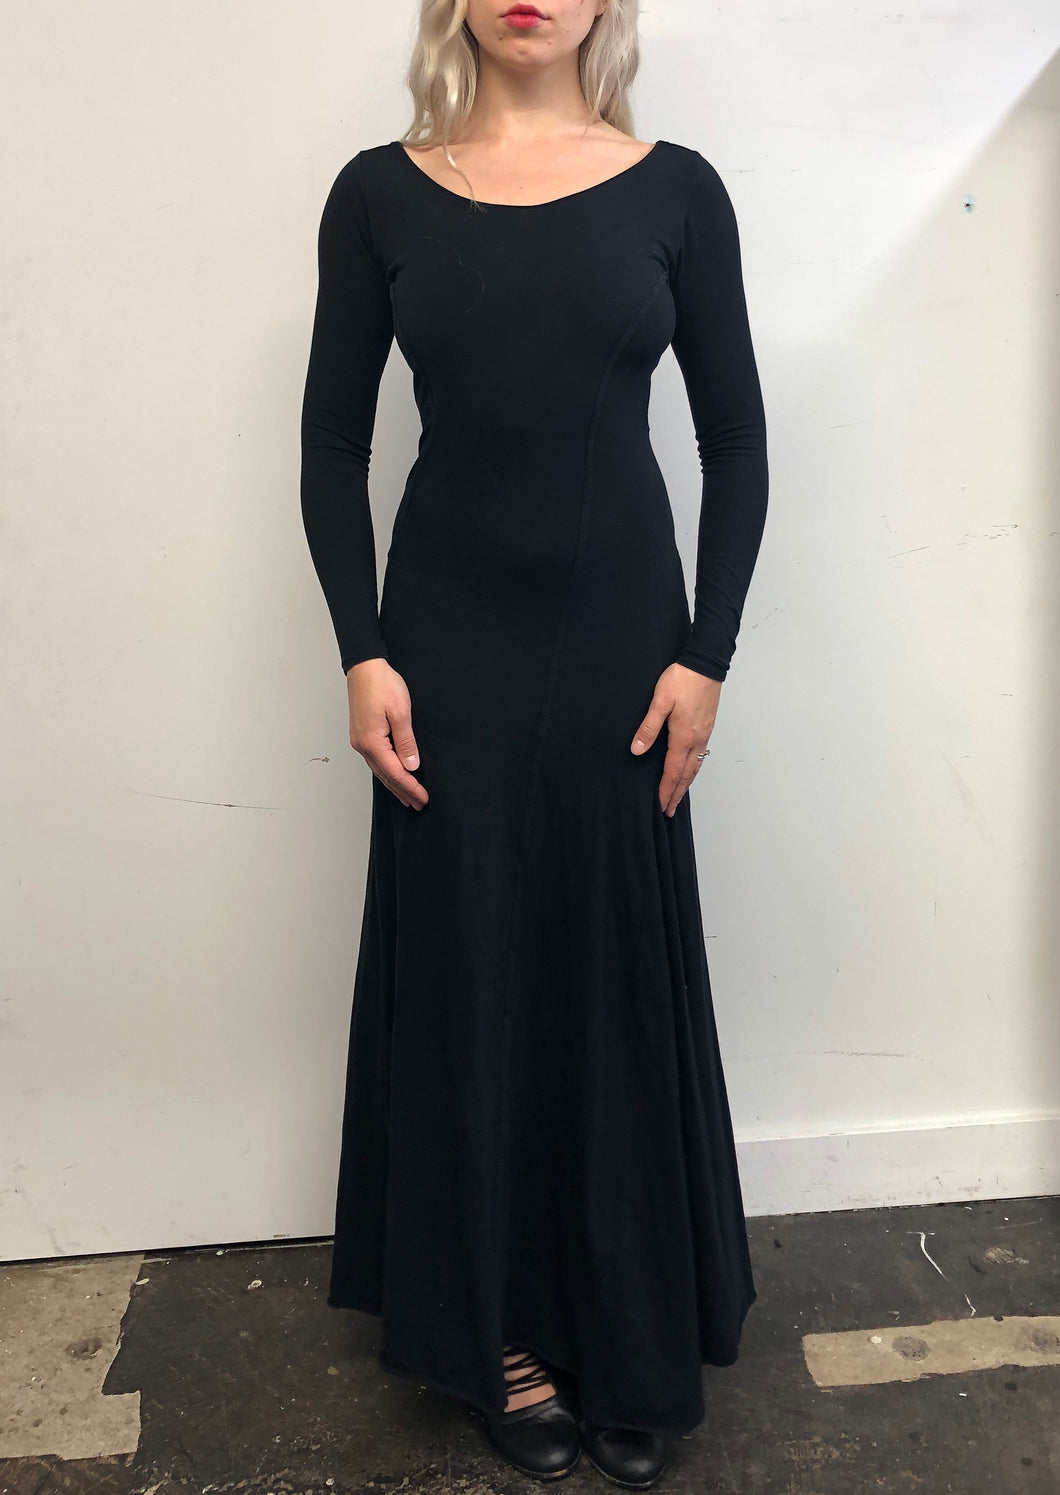 Sample Sale: Twist Seam Mermaid Maxi Dress in Cotton (S/XS)